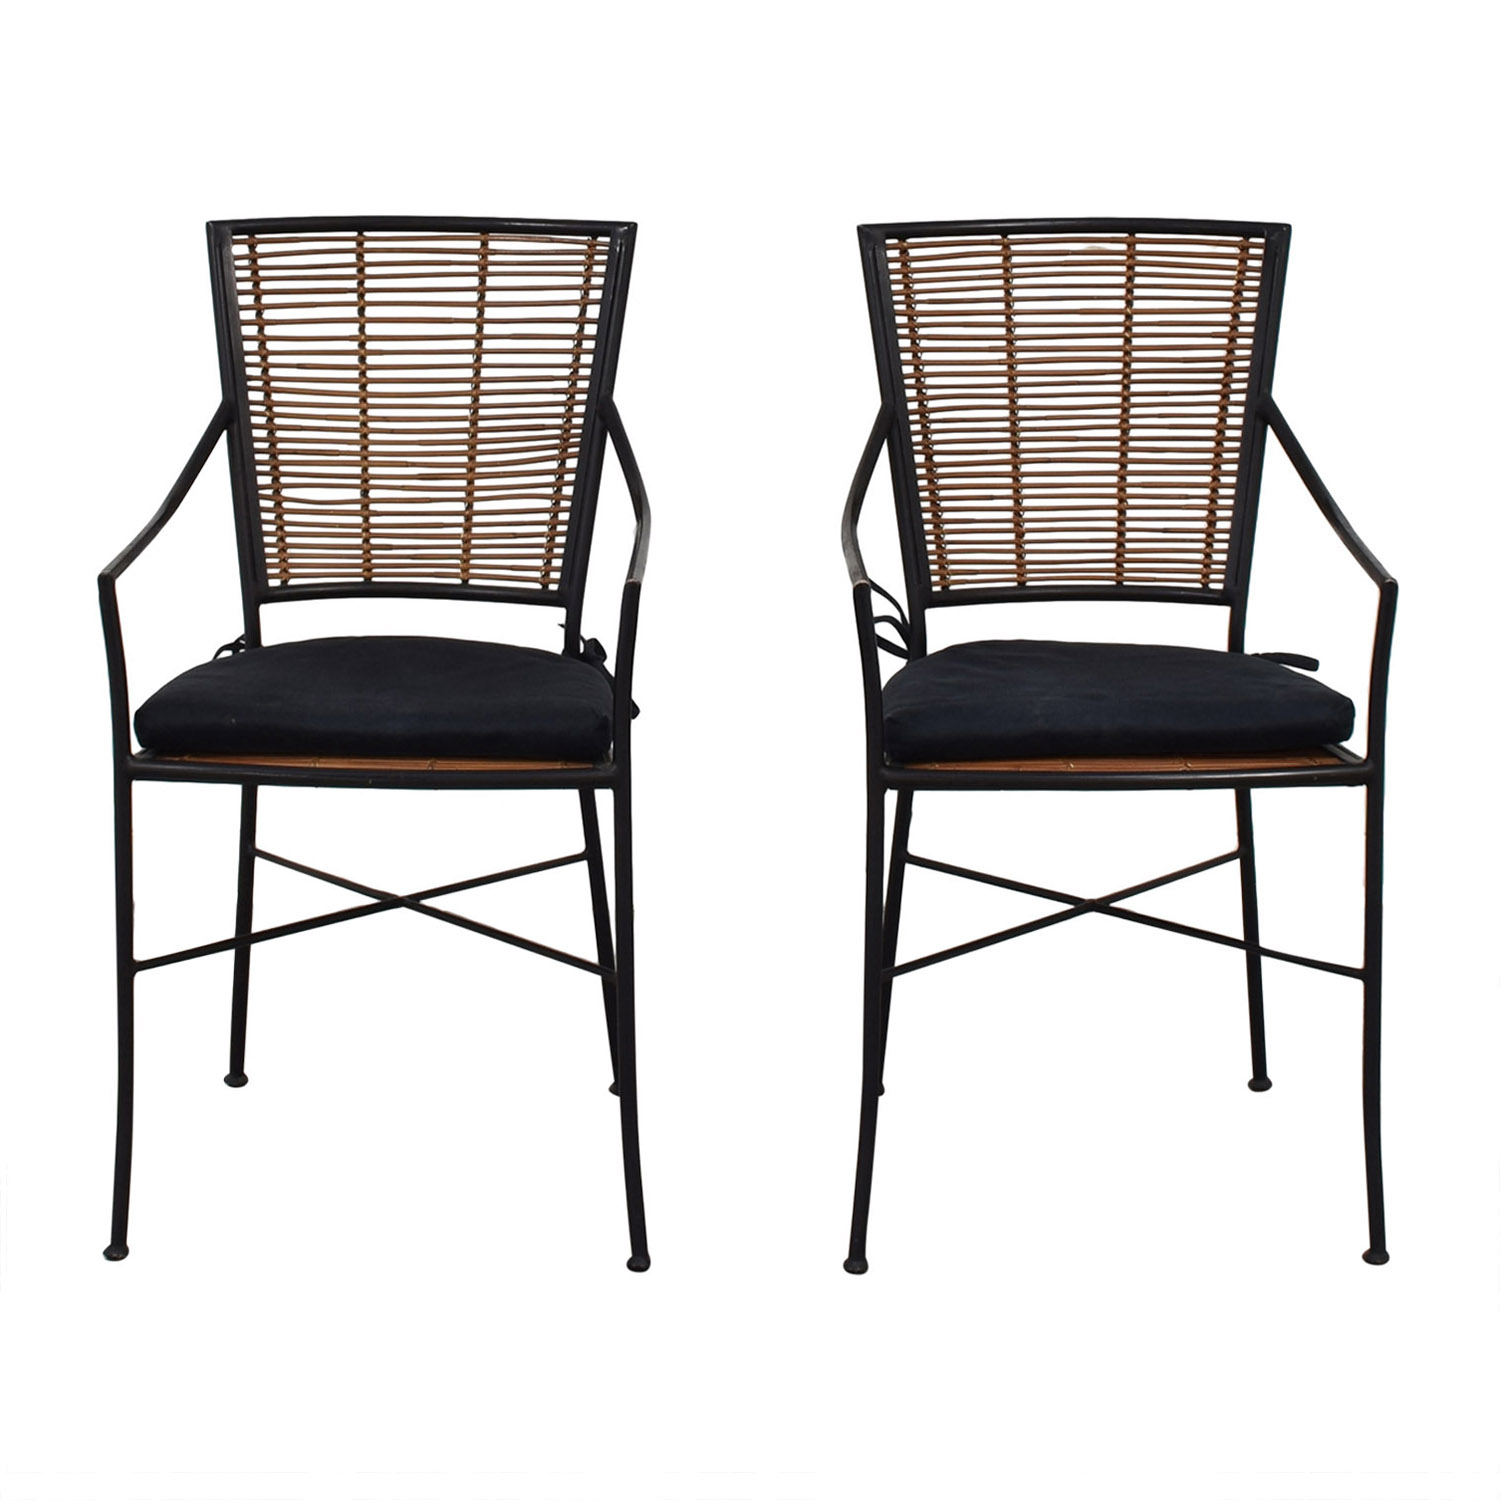 Crate & Barrel Crate & Barrel Dining Chairs coupon